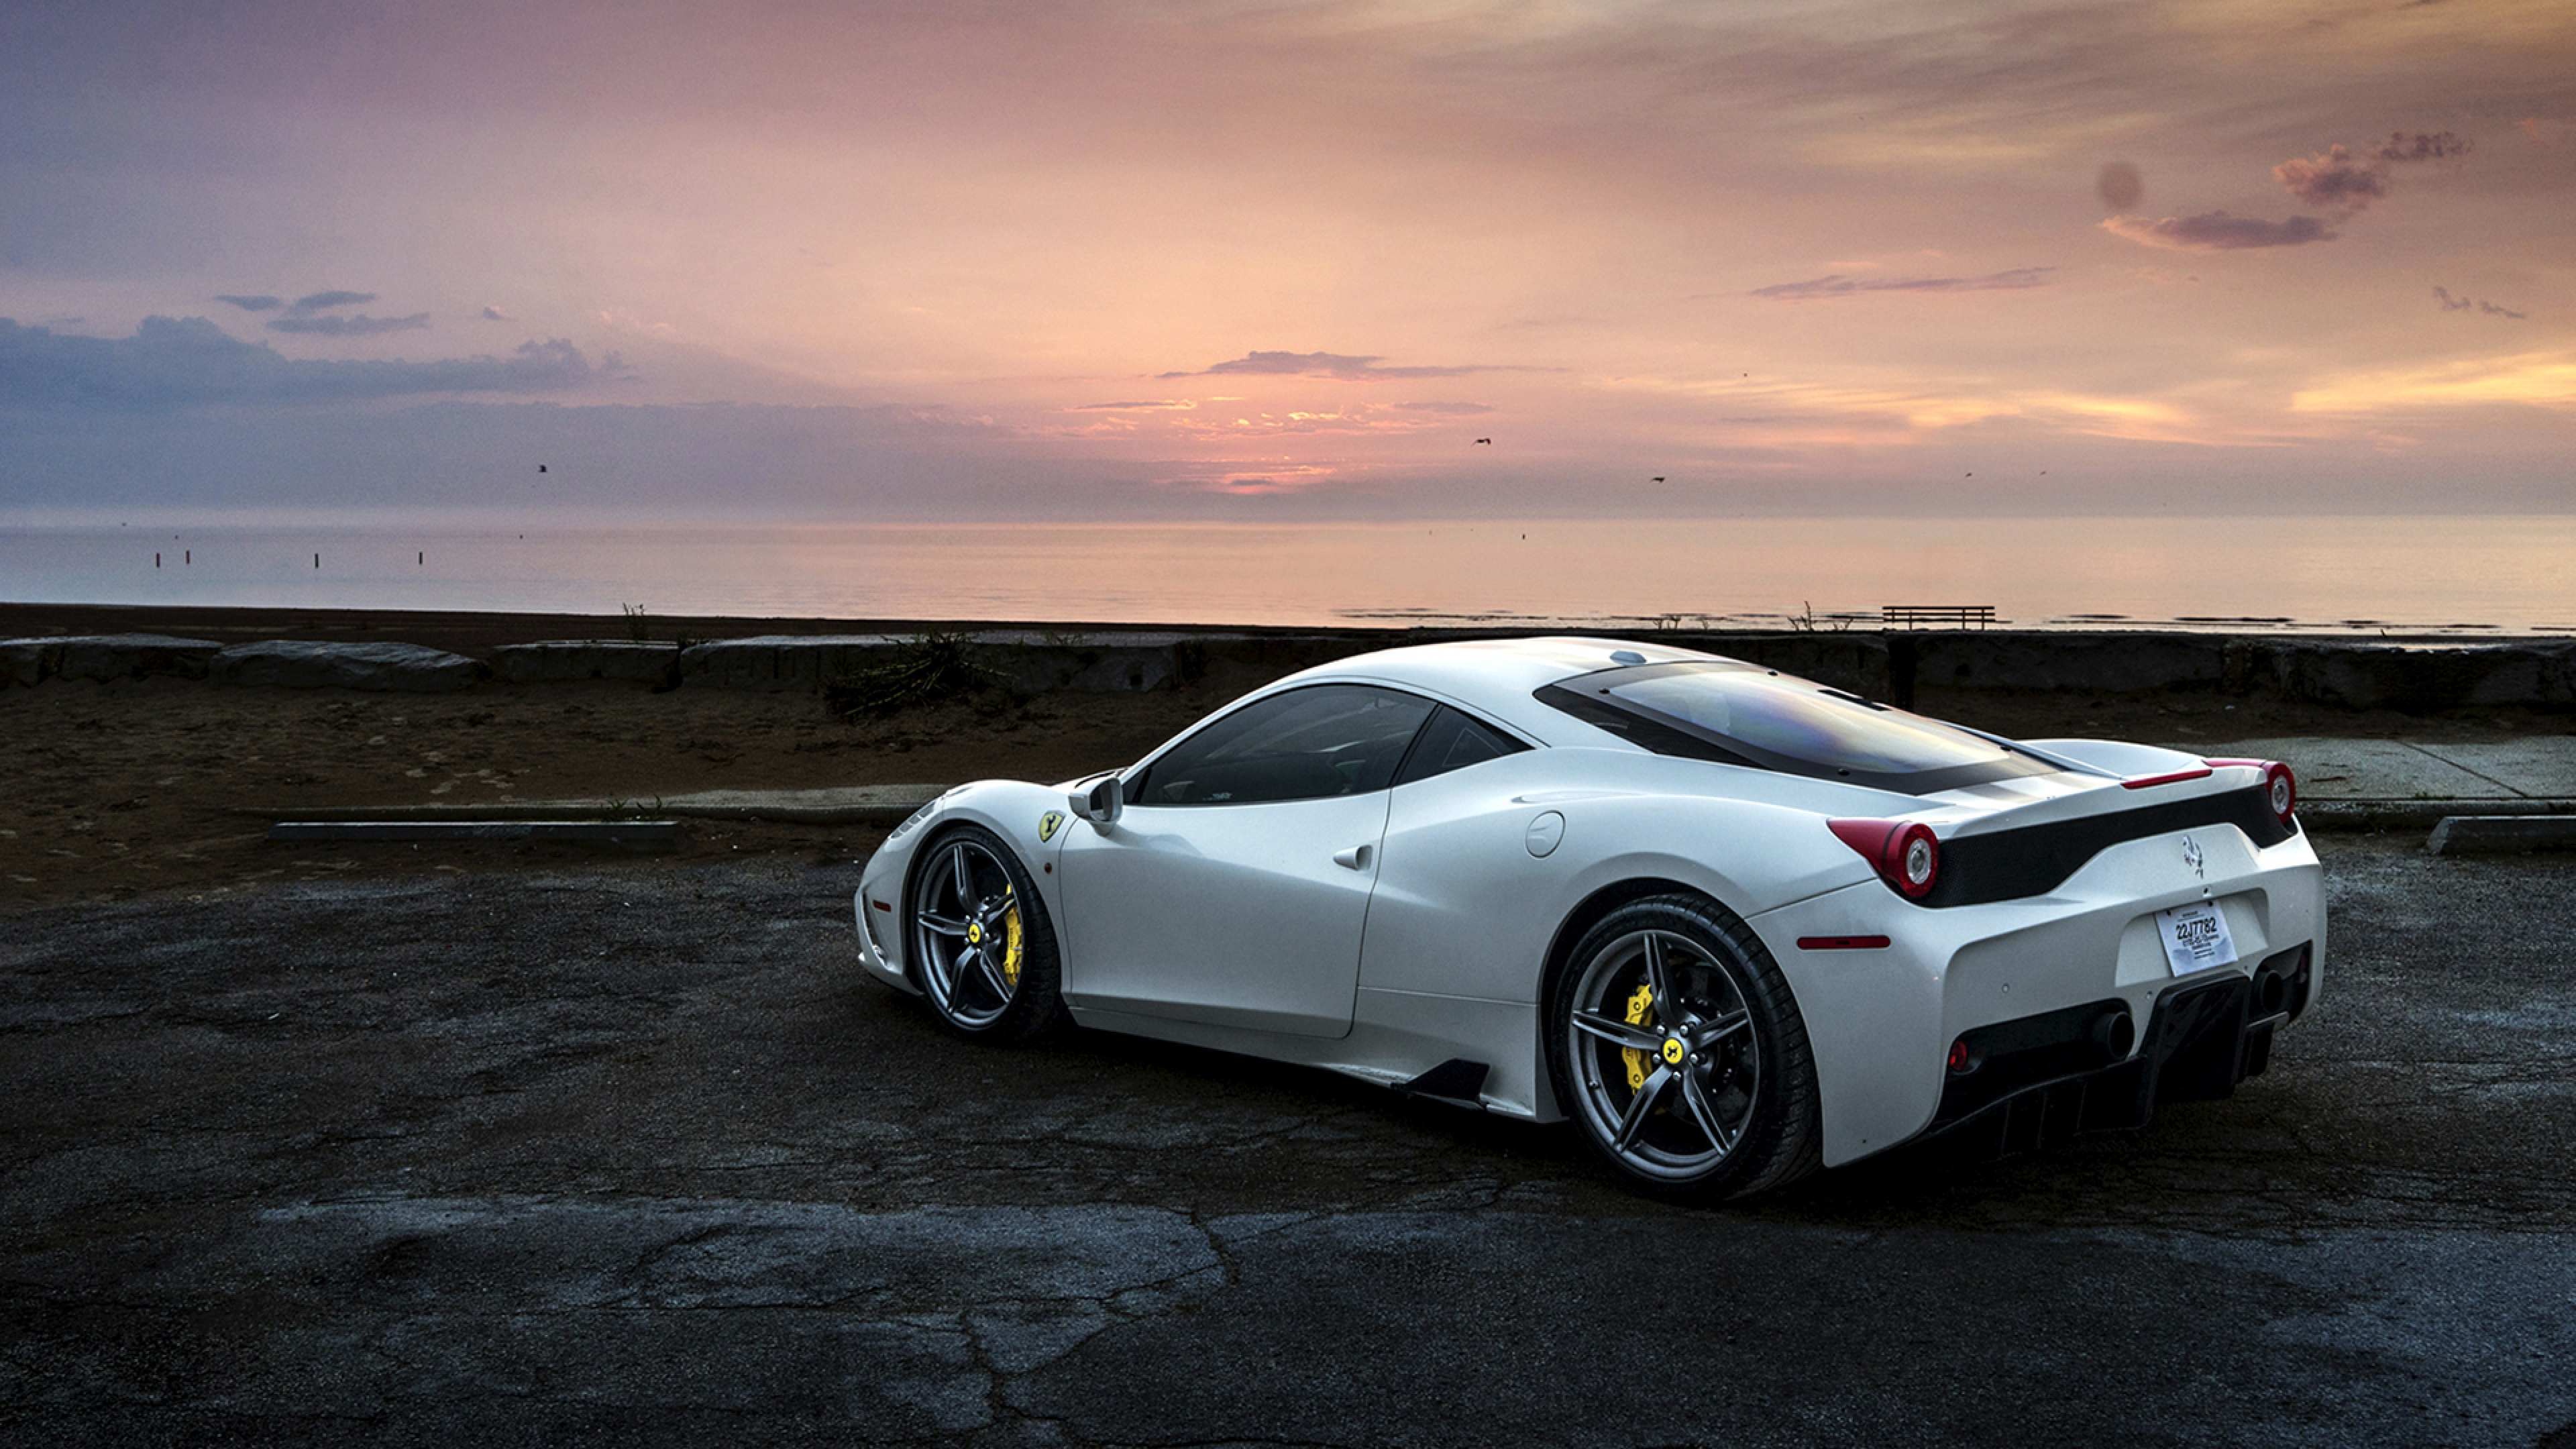 1920x1080 ferrari 458 white laptop full hd 1080p hd 4k wallpapers